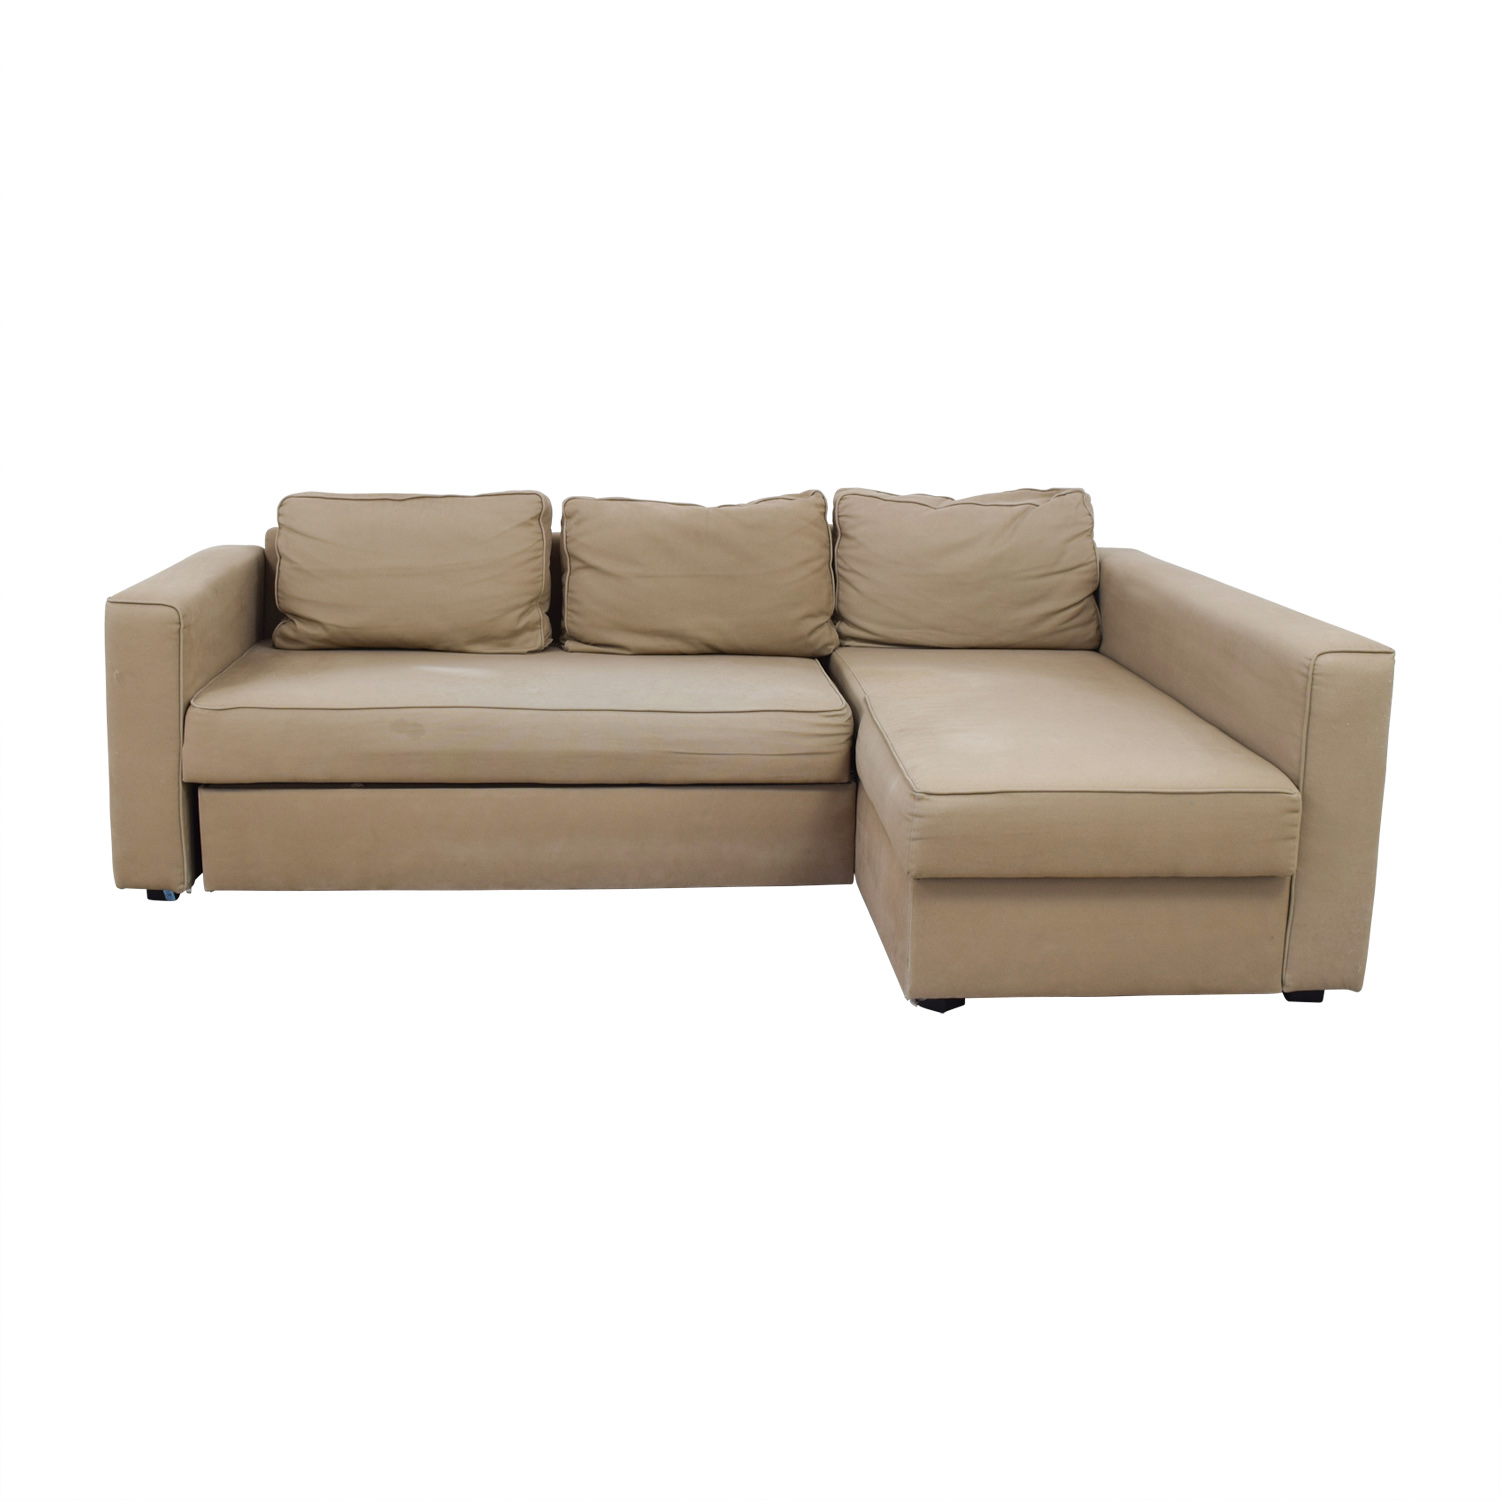 IKEA IKEA Manstad Sectional Sofa Bed With